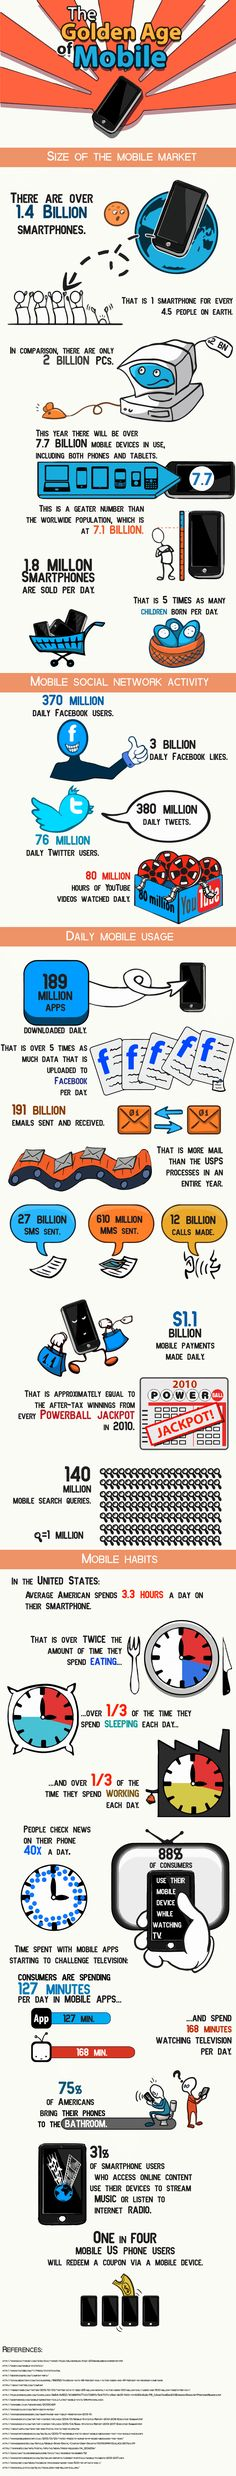 Social Media, Internet, SMS, Apps - Incredible Smartphone Stats, Facts & Figures [INFOGRAPHIC] #FUFISM